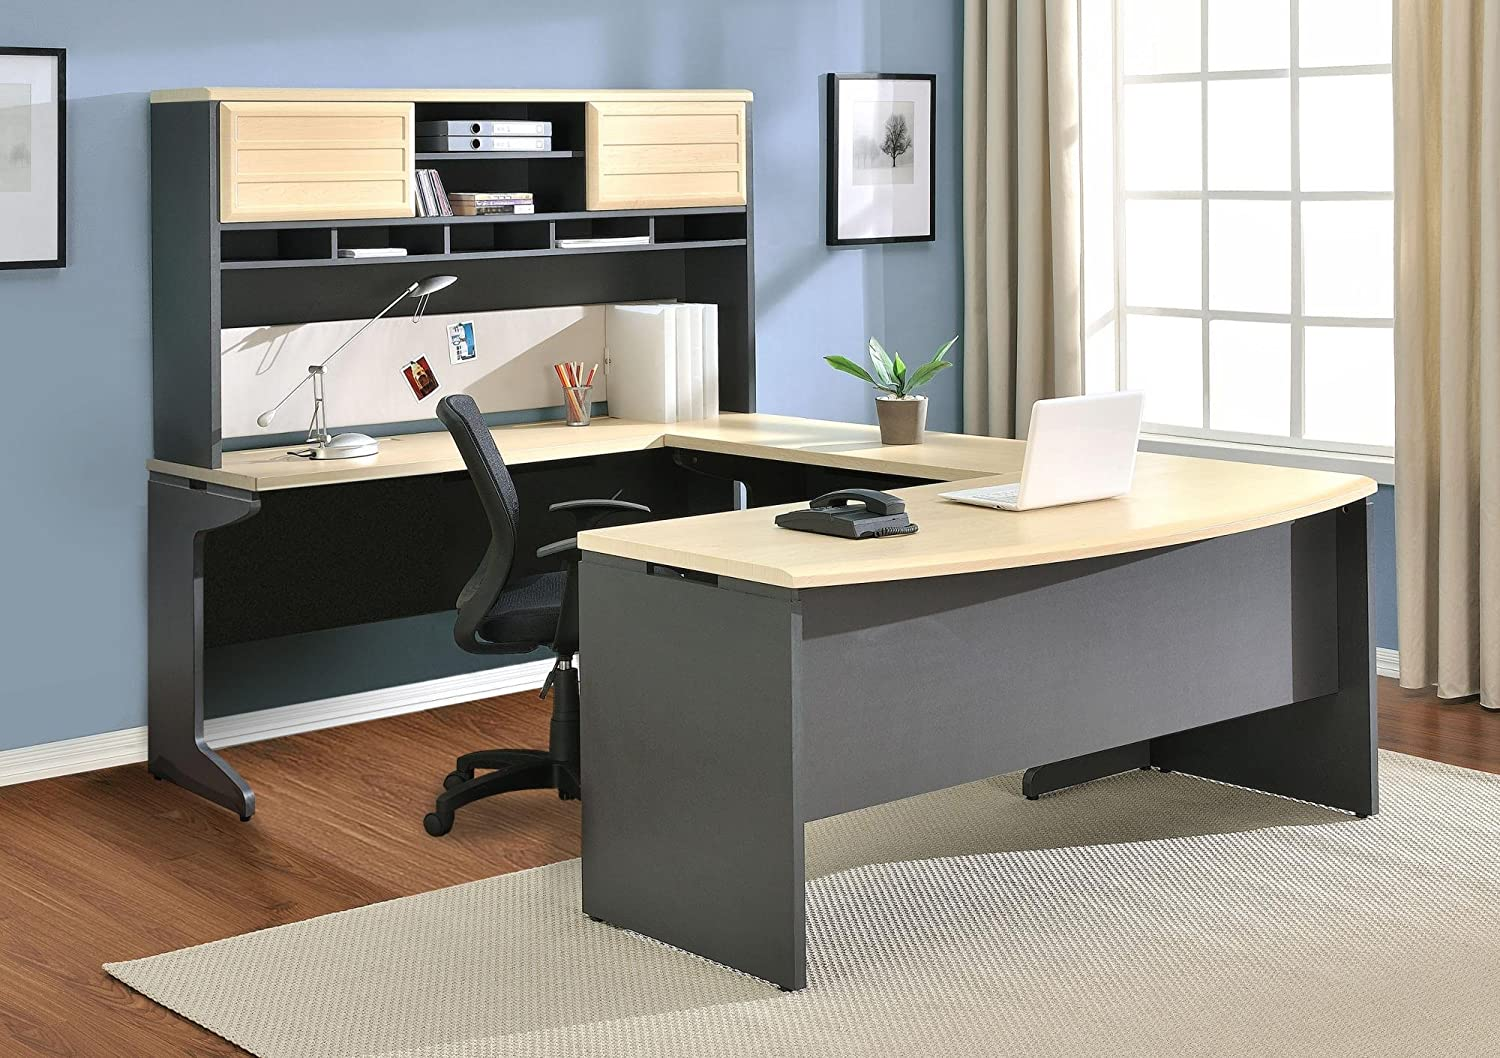 office desk configuration ideas amazoncom altra pursuit u shaped desk with hutch bundle natural gray kitchen amazing office desk hutch